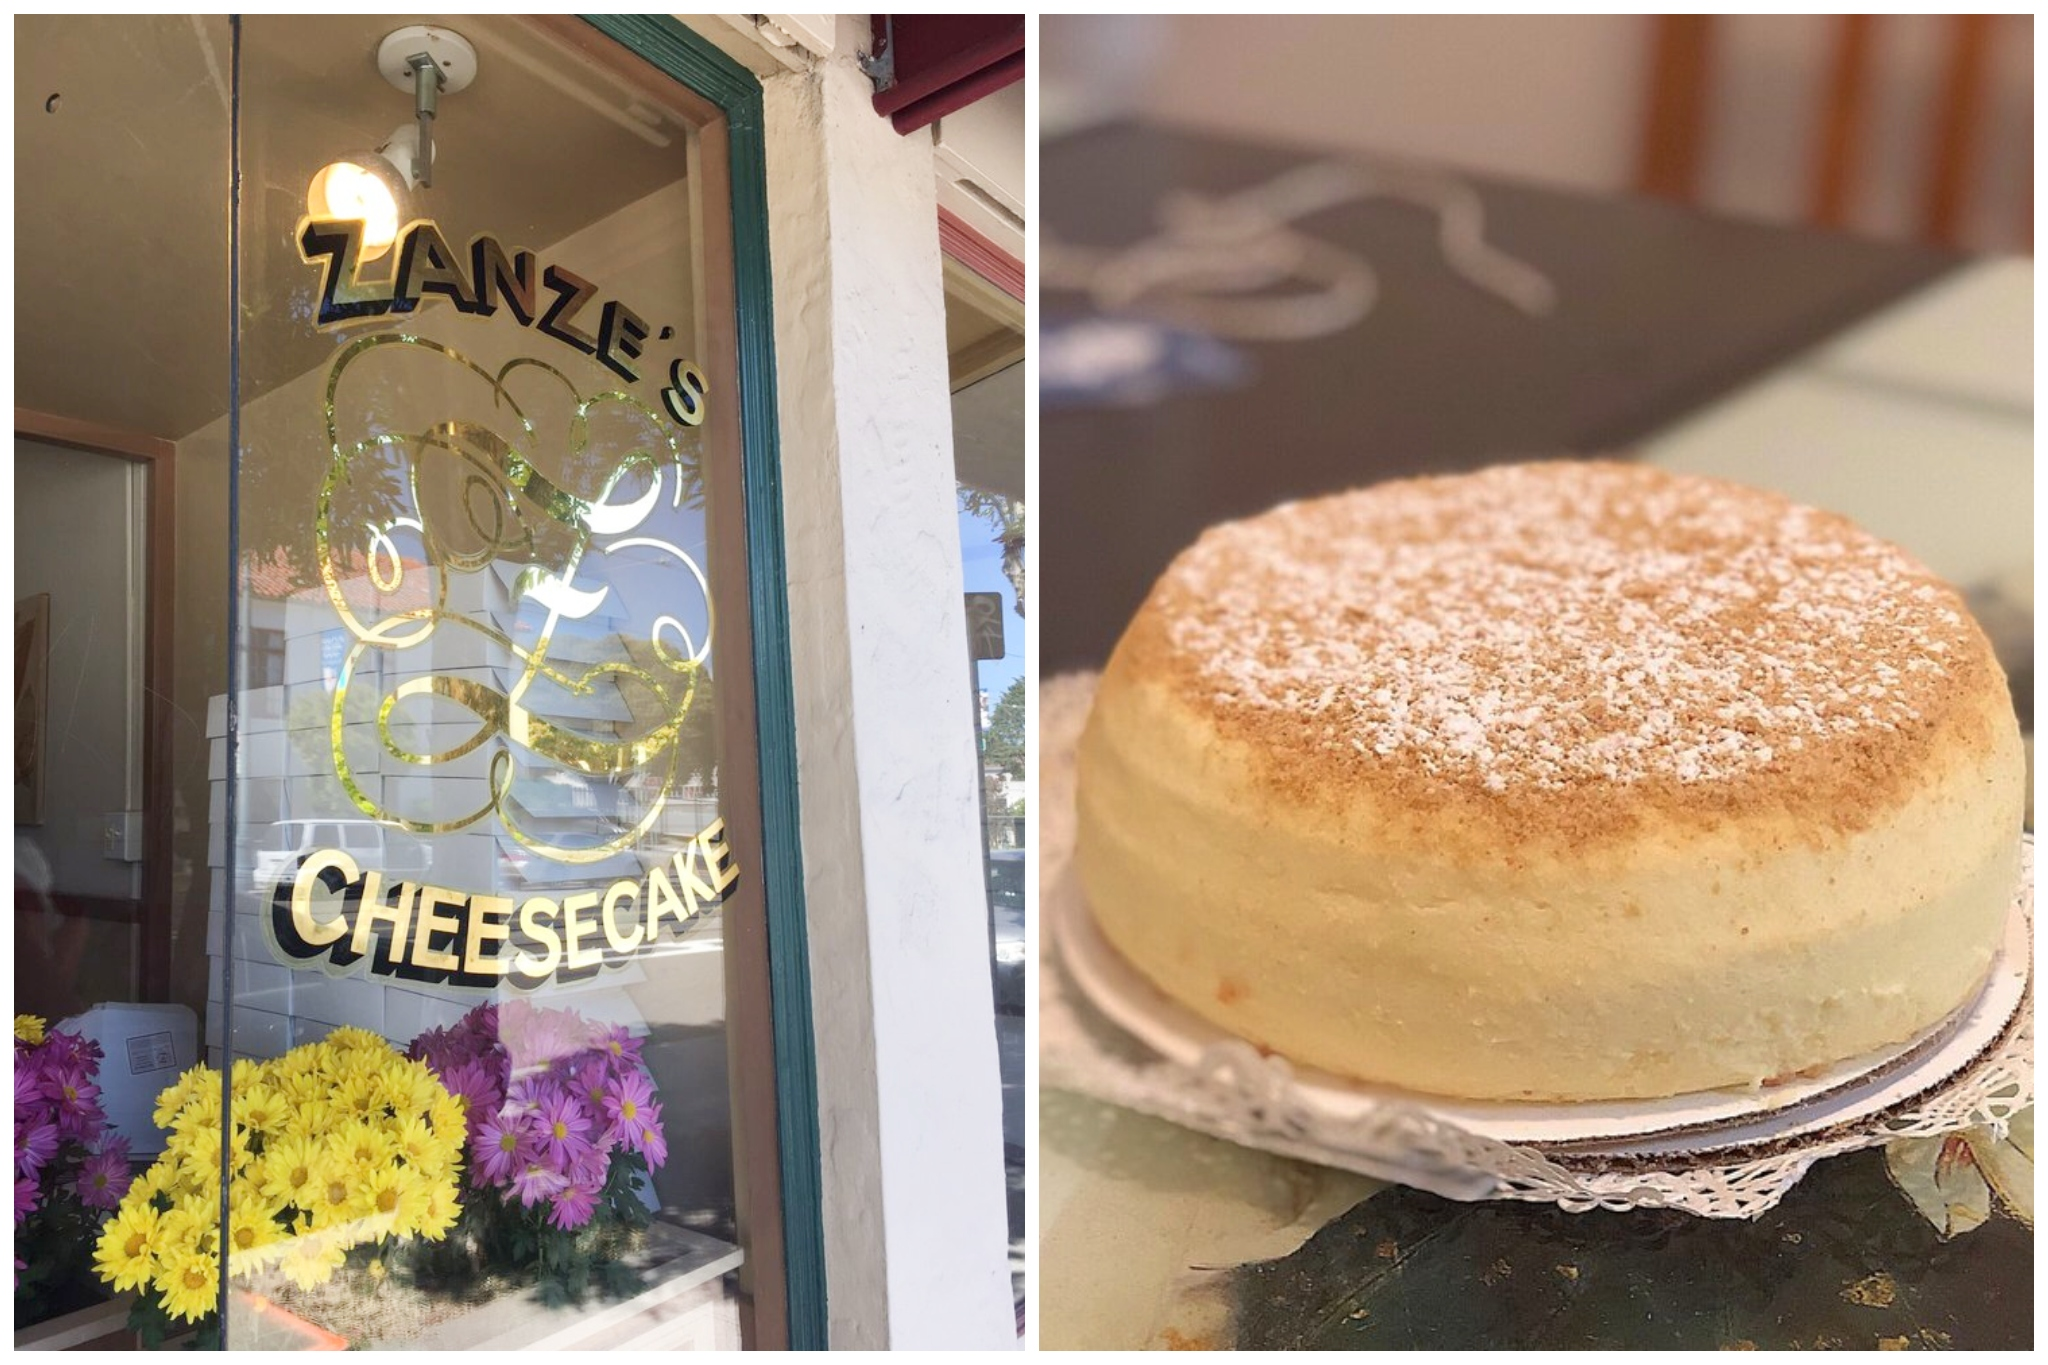 San Francisco's iconic cheesecake shop shifts to wholesale